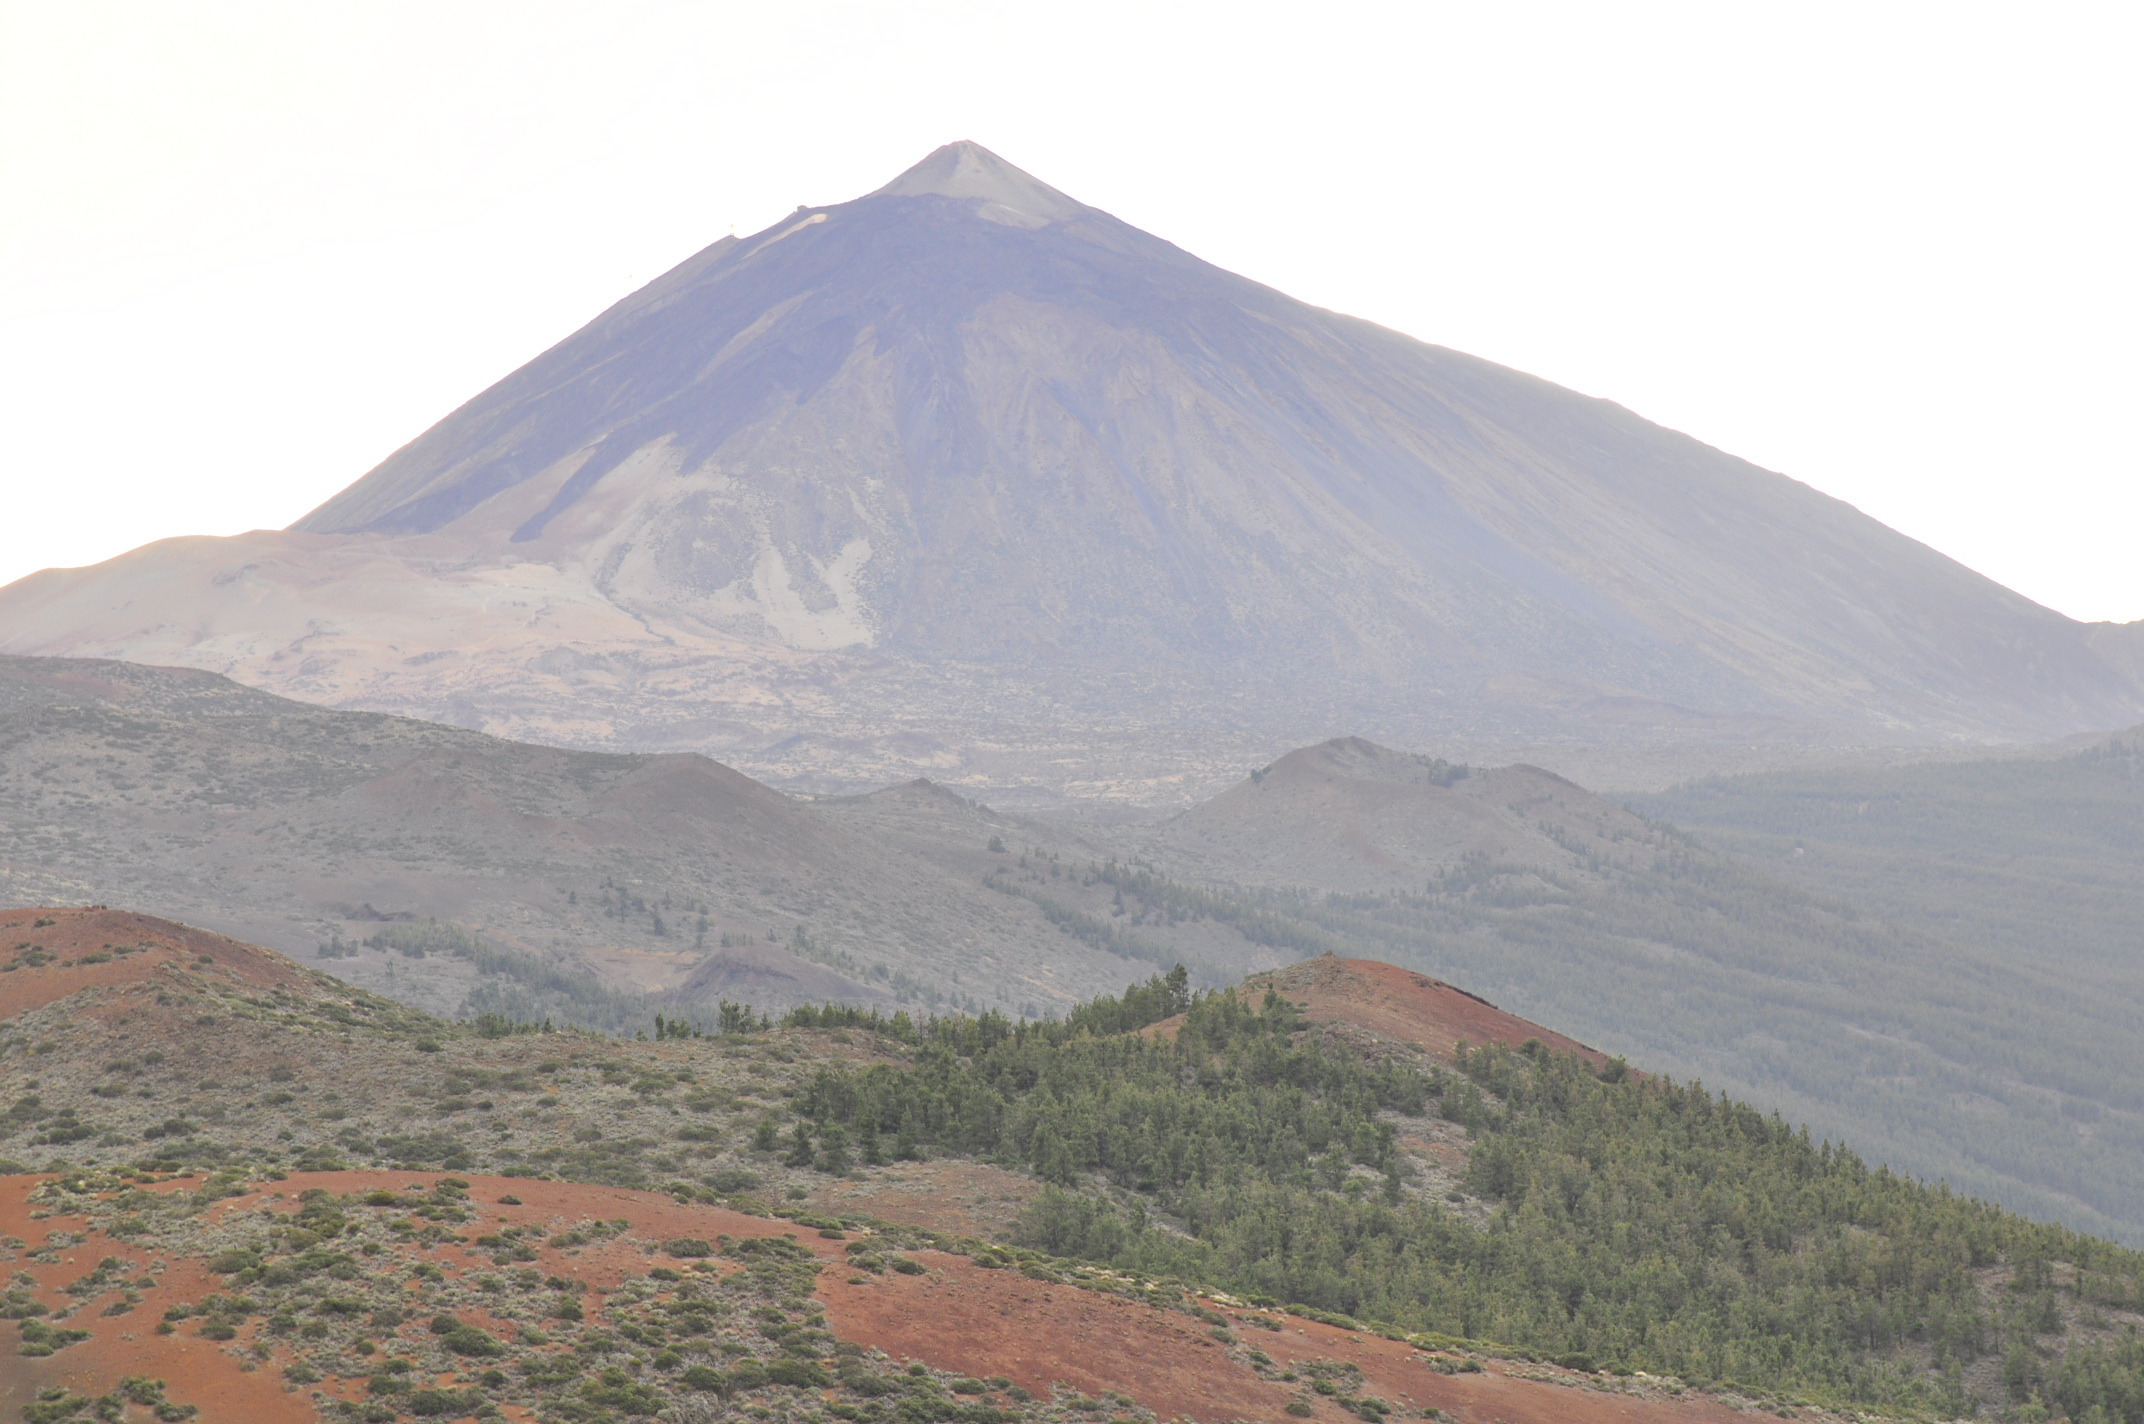 The majestic peak of El Teide, seen from Tenerife's backbone towards the north.